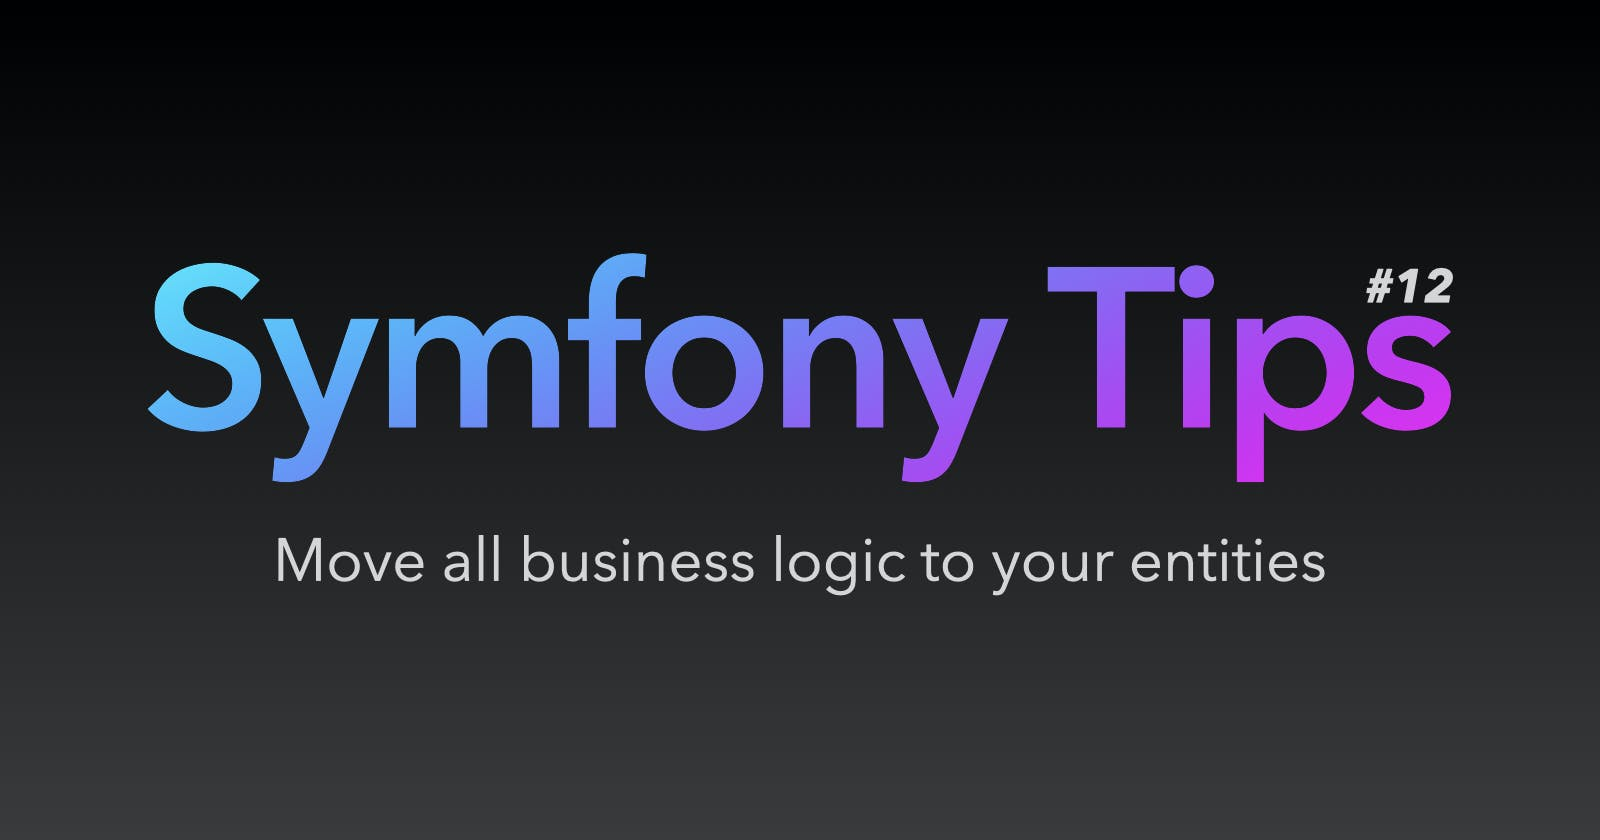 Symfony Tips #12 - Move all business logic to your entities